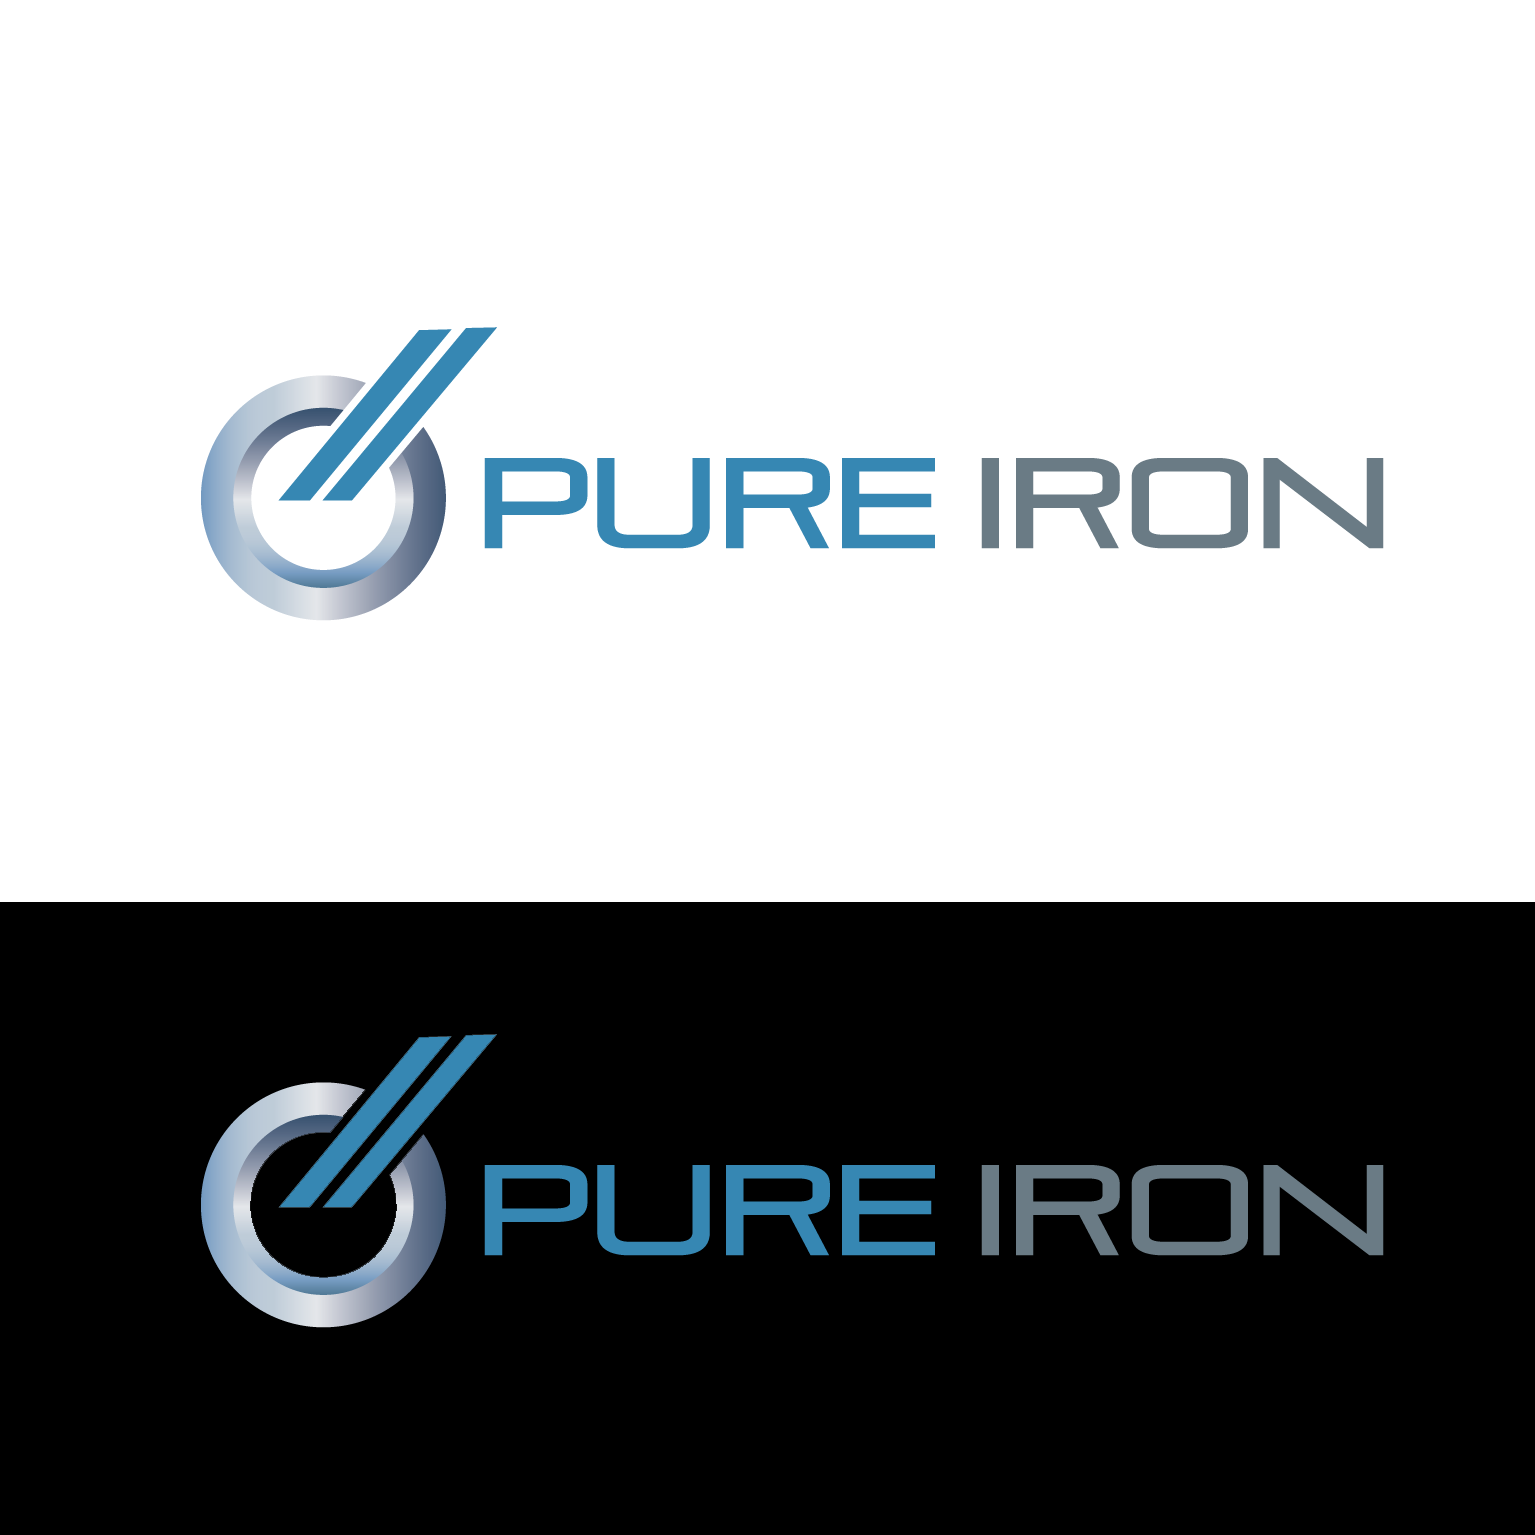 Logo Design by luna - Entry No. 42 in the Logo Design Contest Fun Logo Design for Pure Iron.